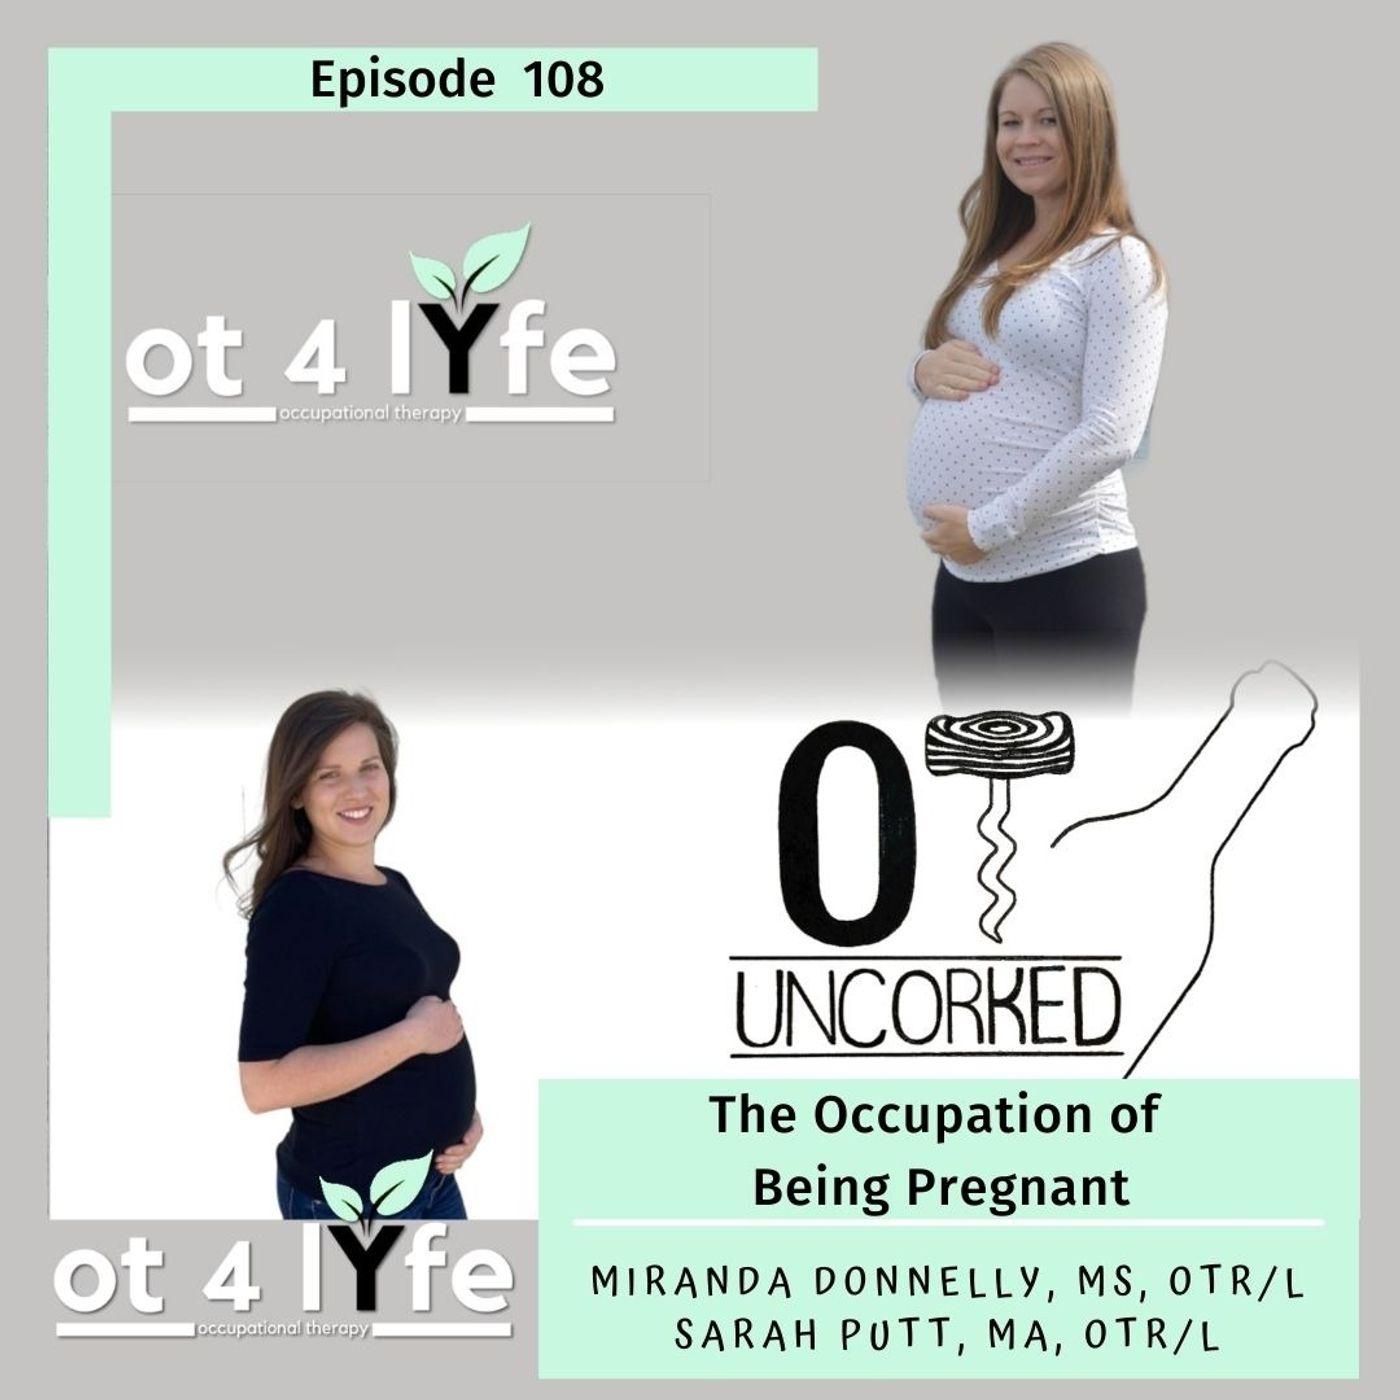 The Occupation of Being Pregnant